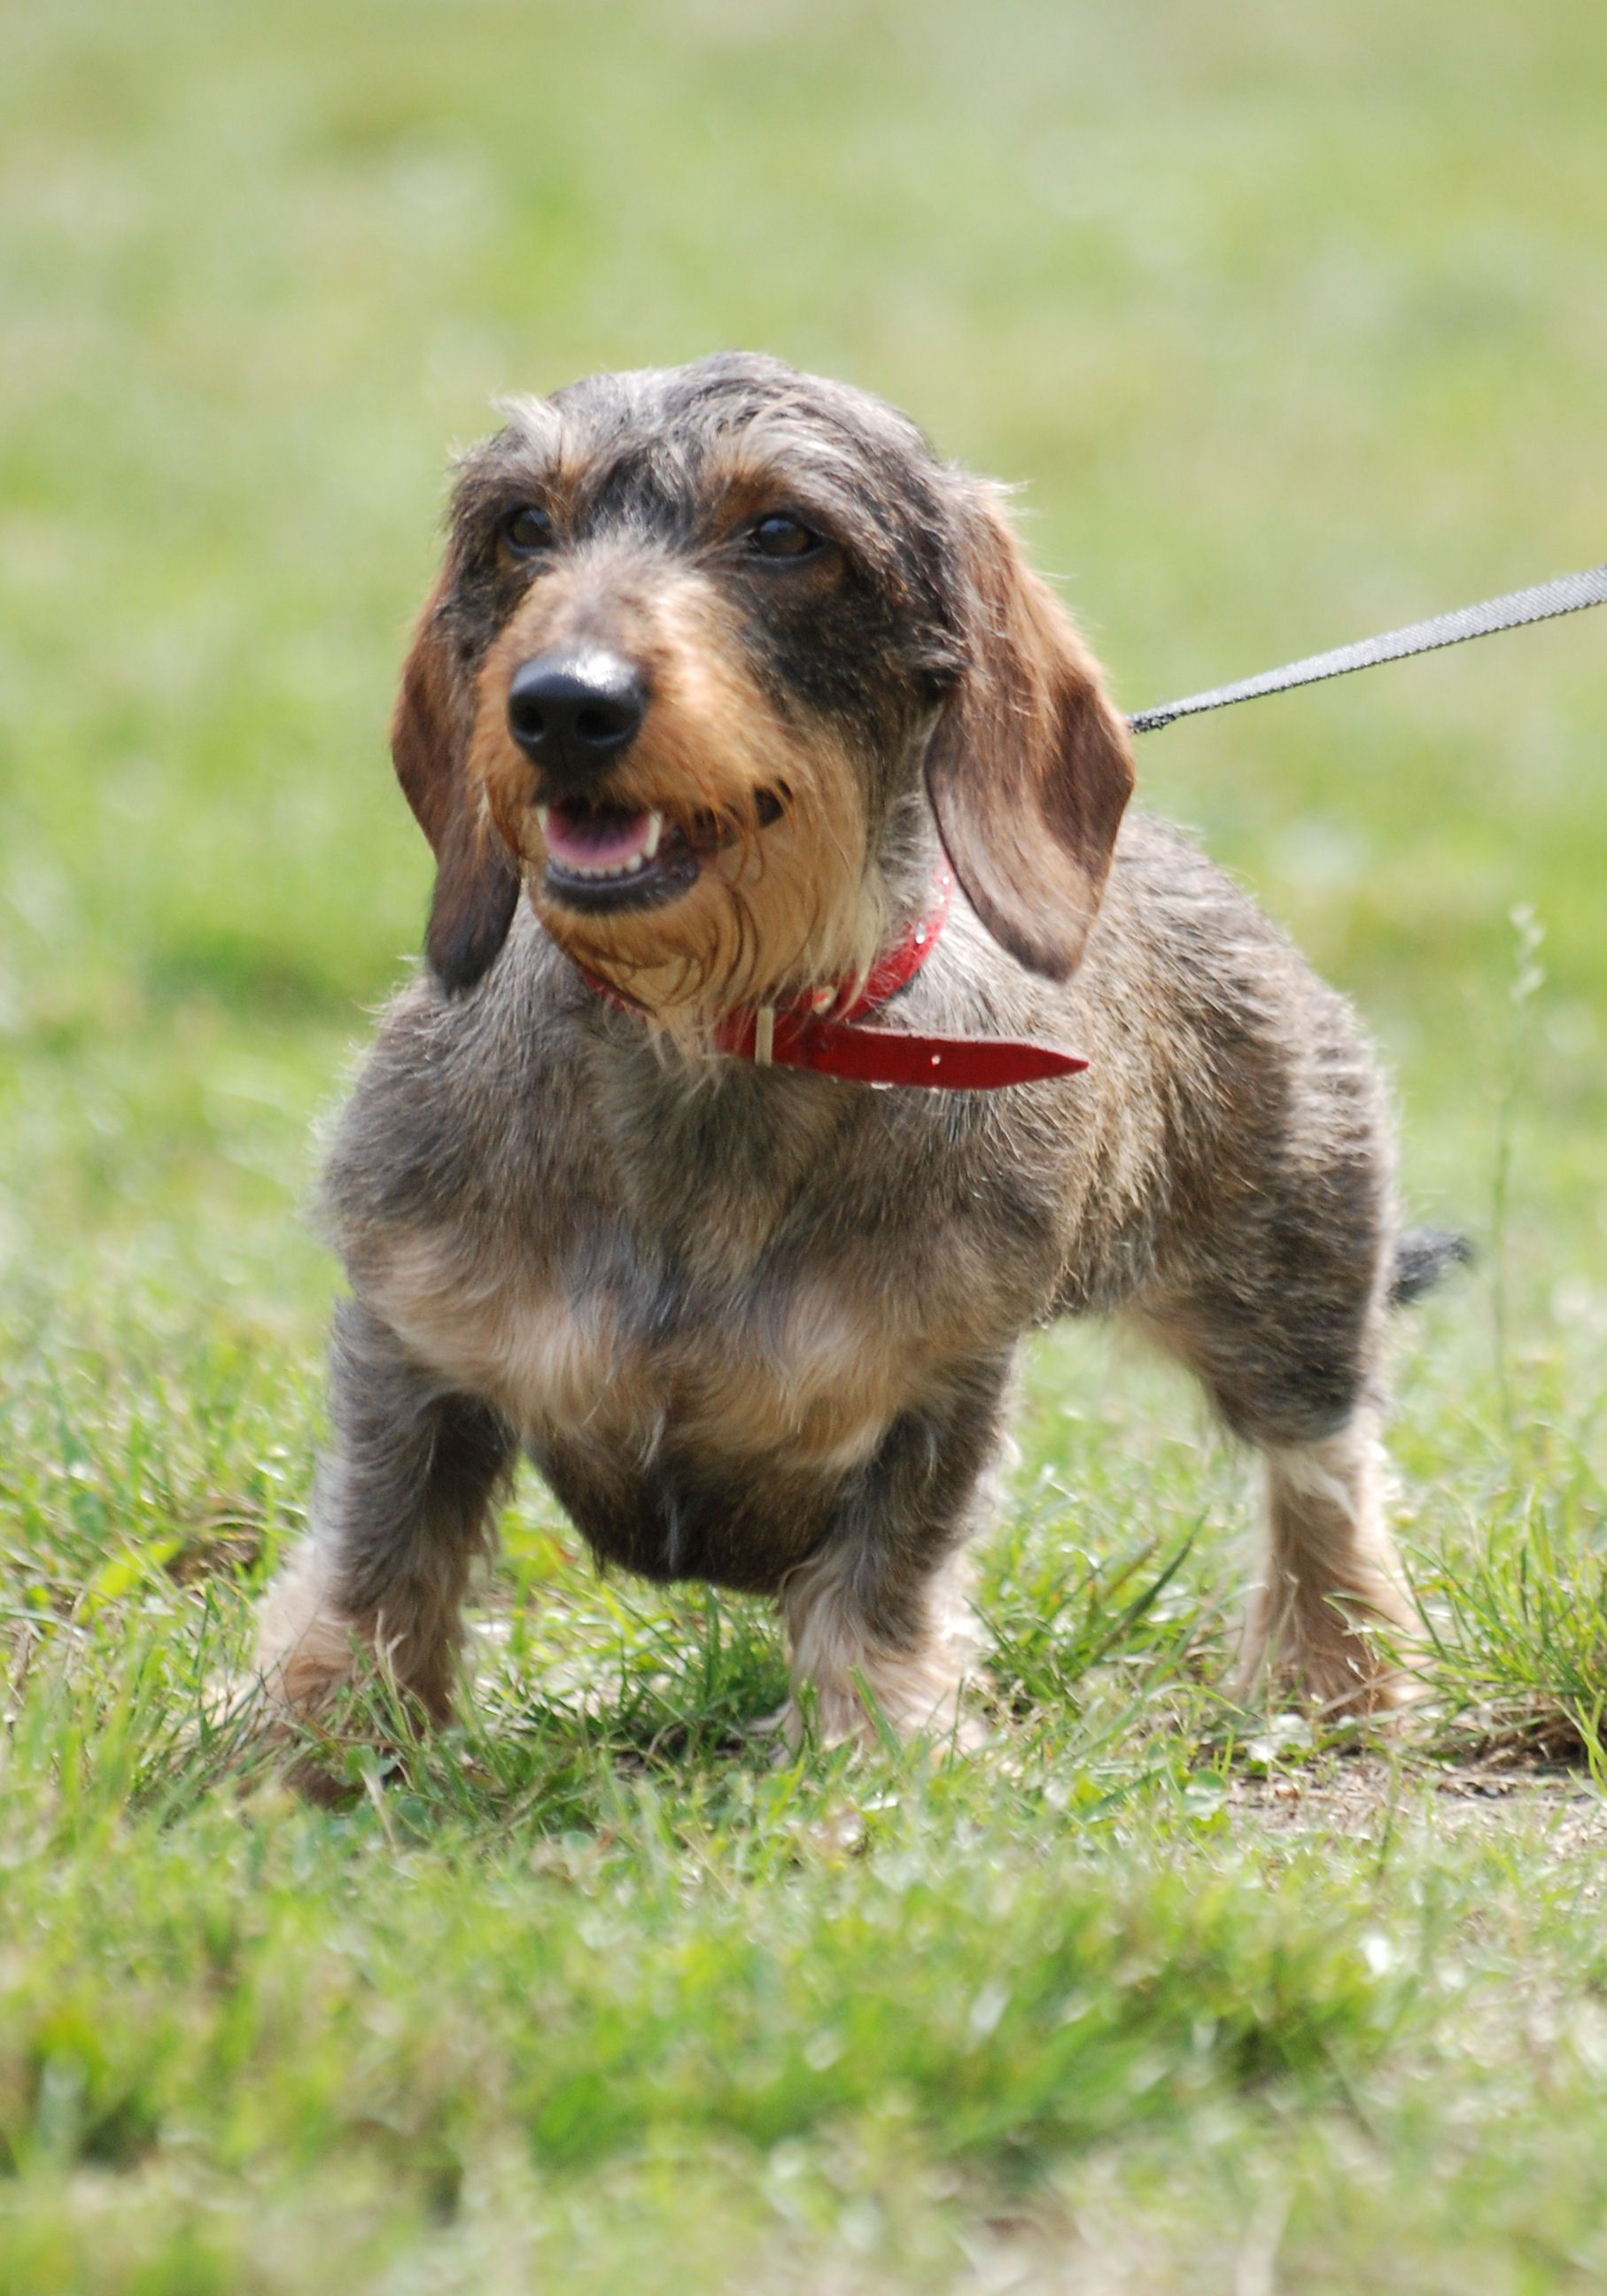 dachshund dog | File:Wire-haired Dachshund R 01.JPG - Wikipedia ...